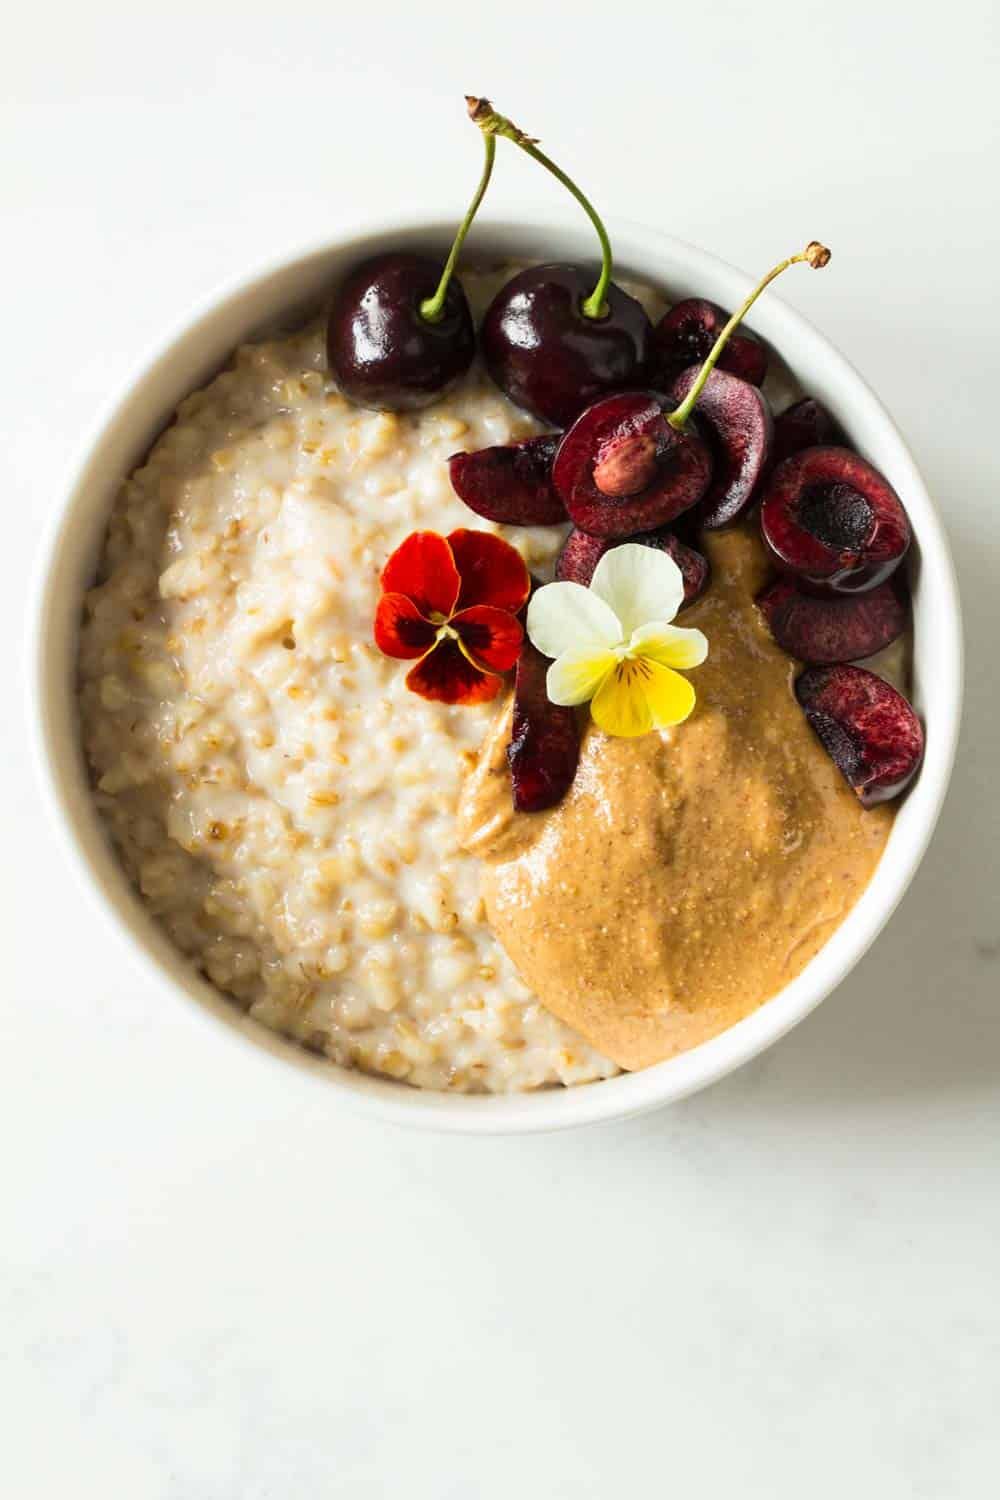 Let me show you 4 ways to enjoy the best Instant Pot Steel Cut Oats ever! Add any milk you want to make it high fat, low fat, vegan, vegetarian, whichever way you like.